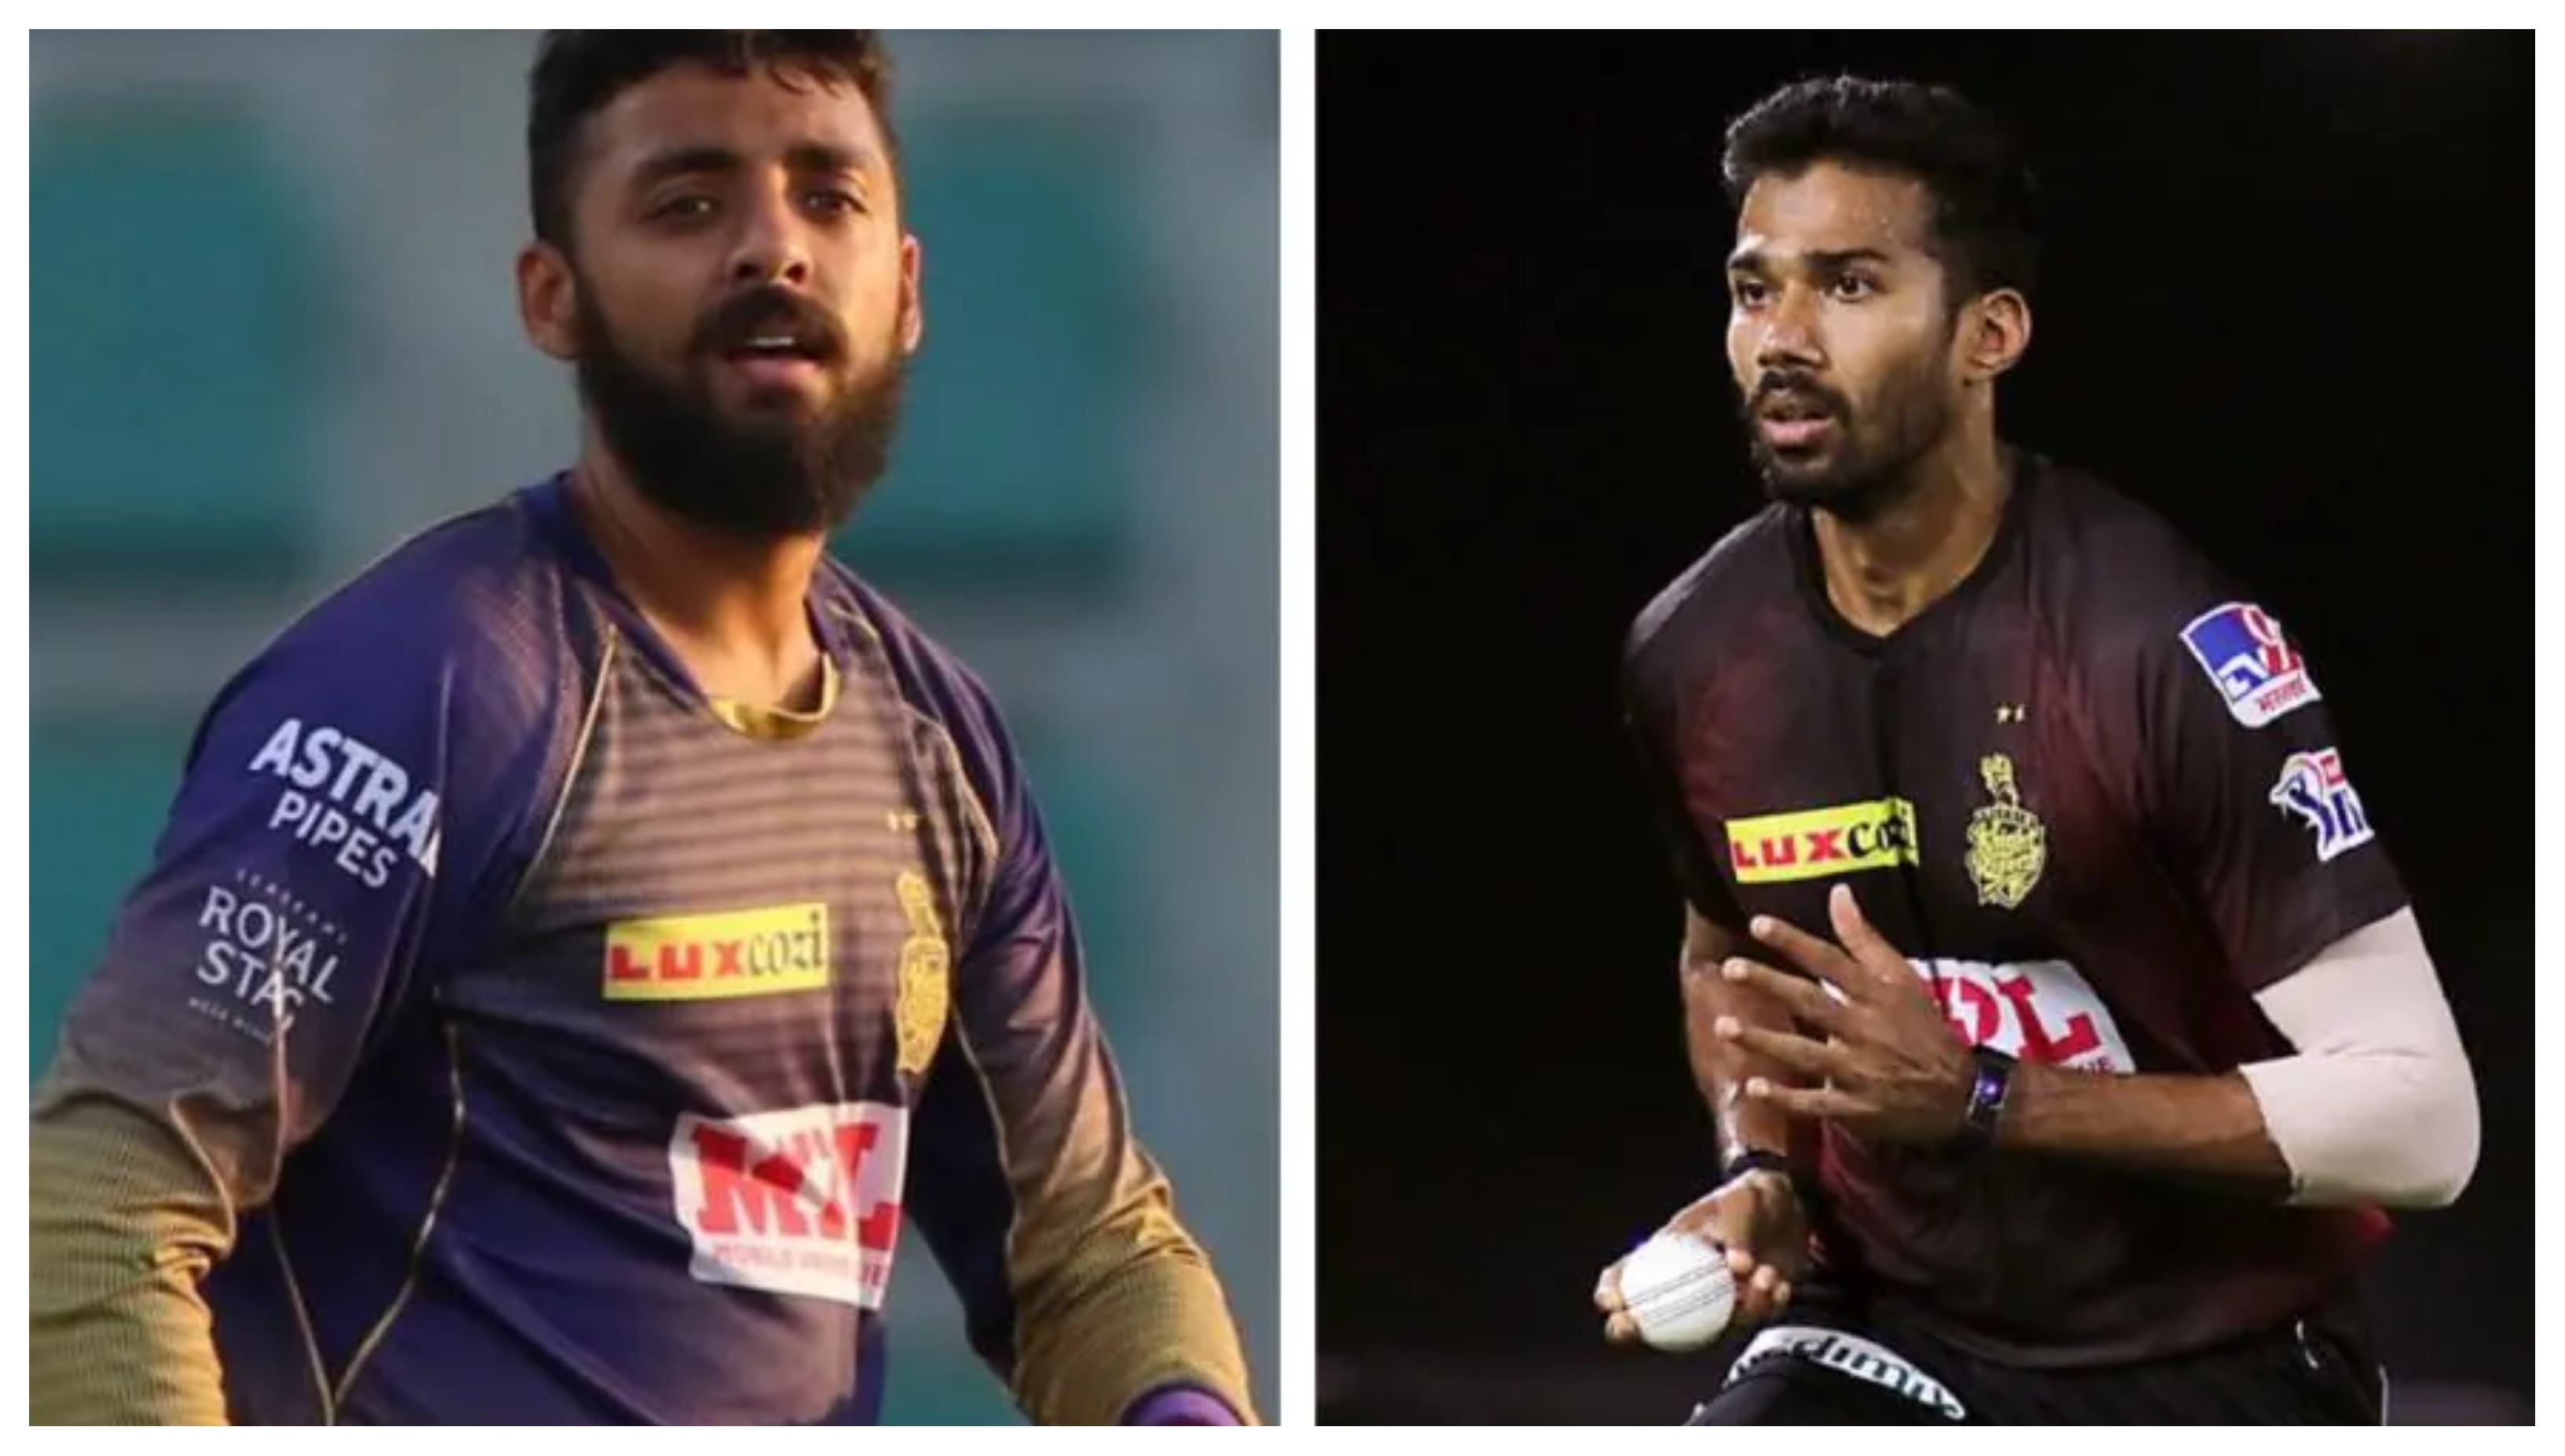 KKR duo of Varun Chakravarthy and Sandeep Warrier were tested COVID-19 positive | IPL/KKR